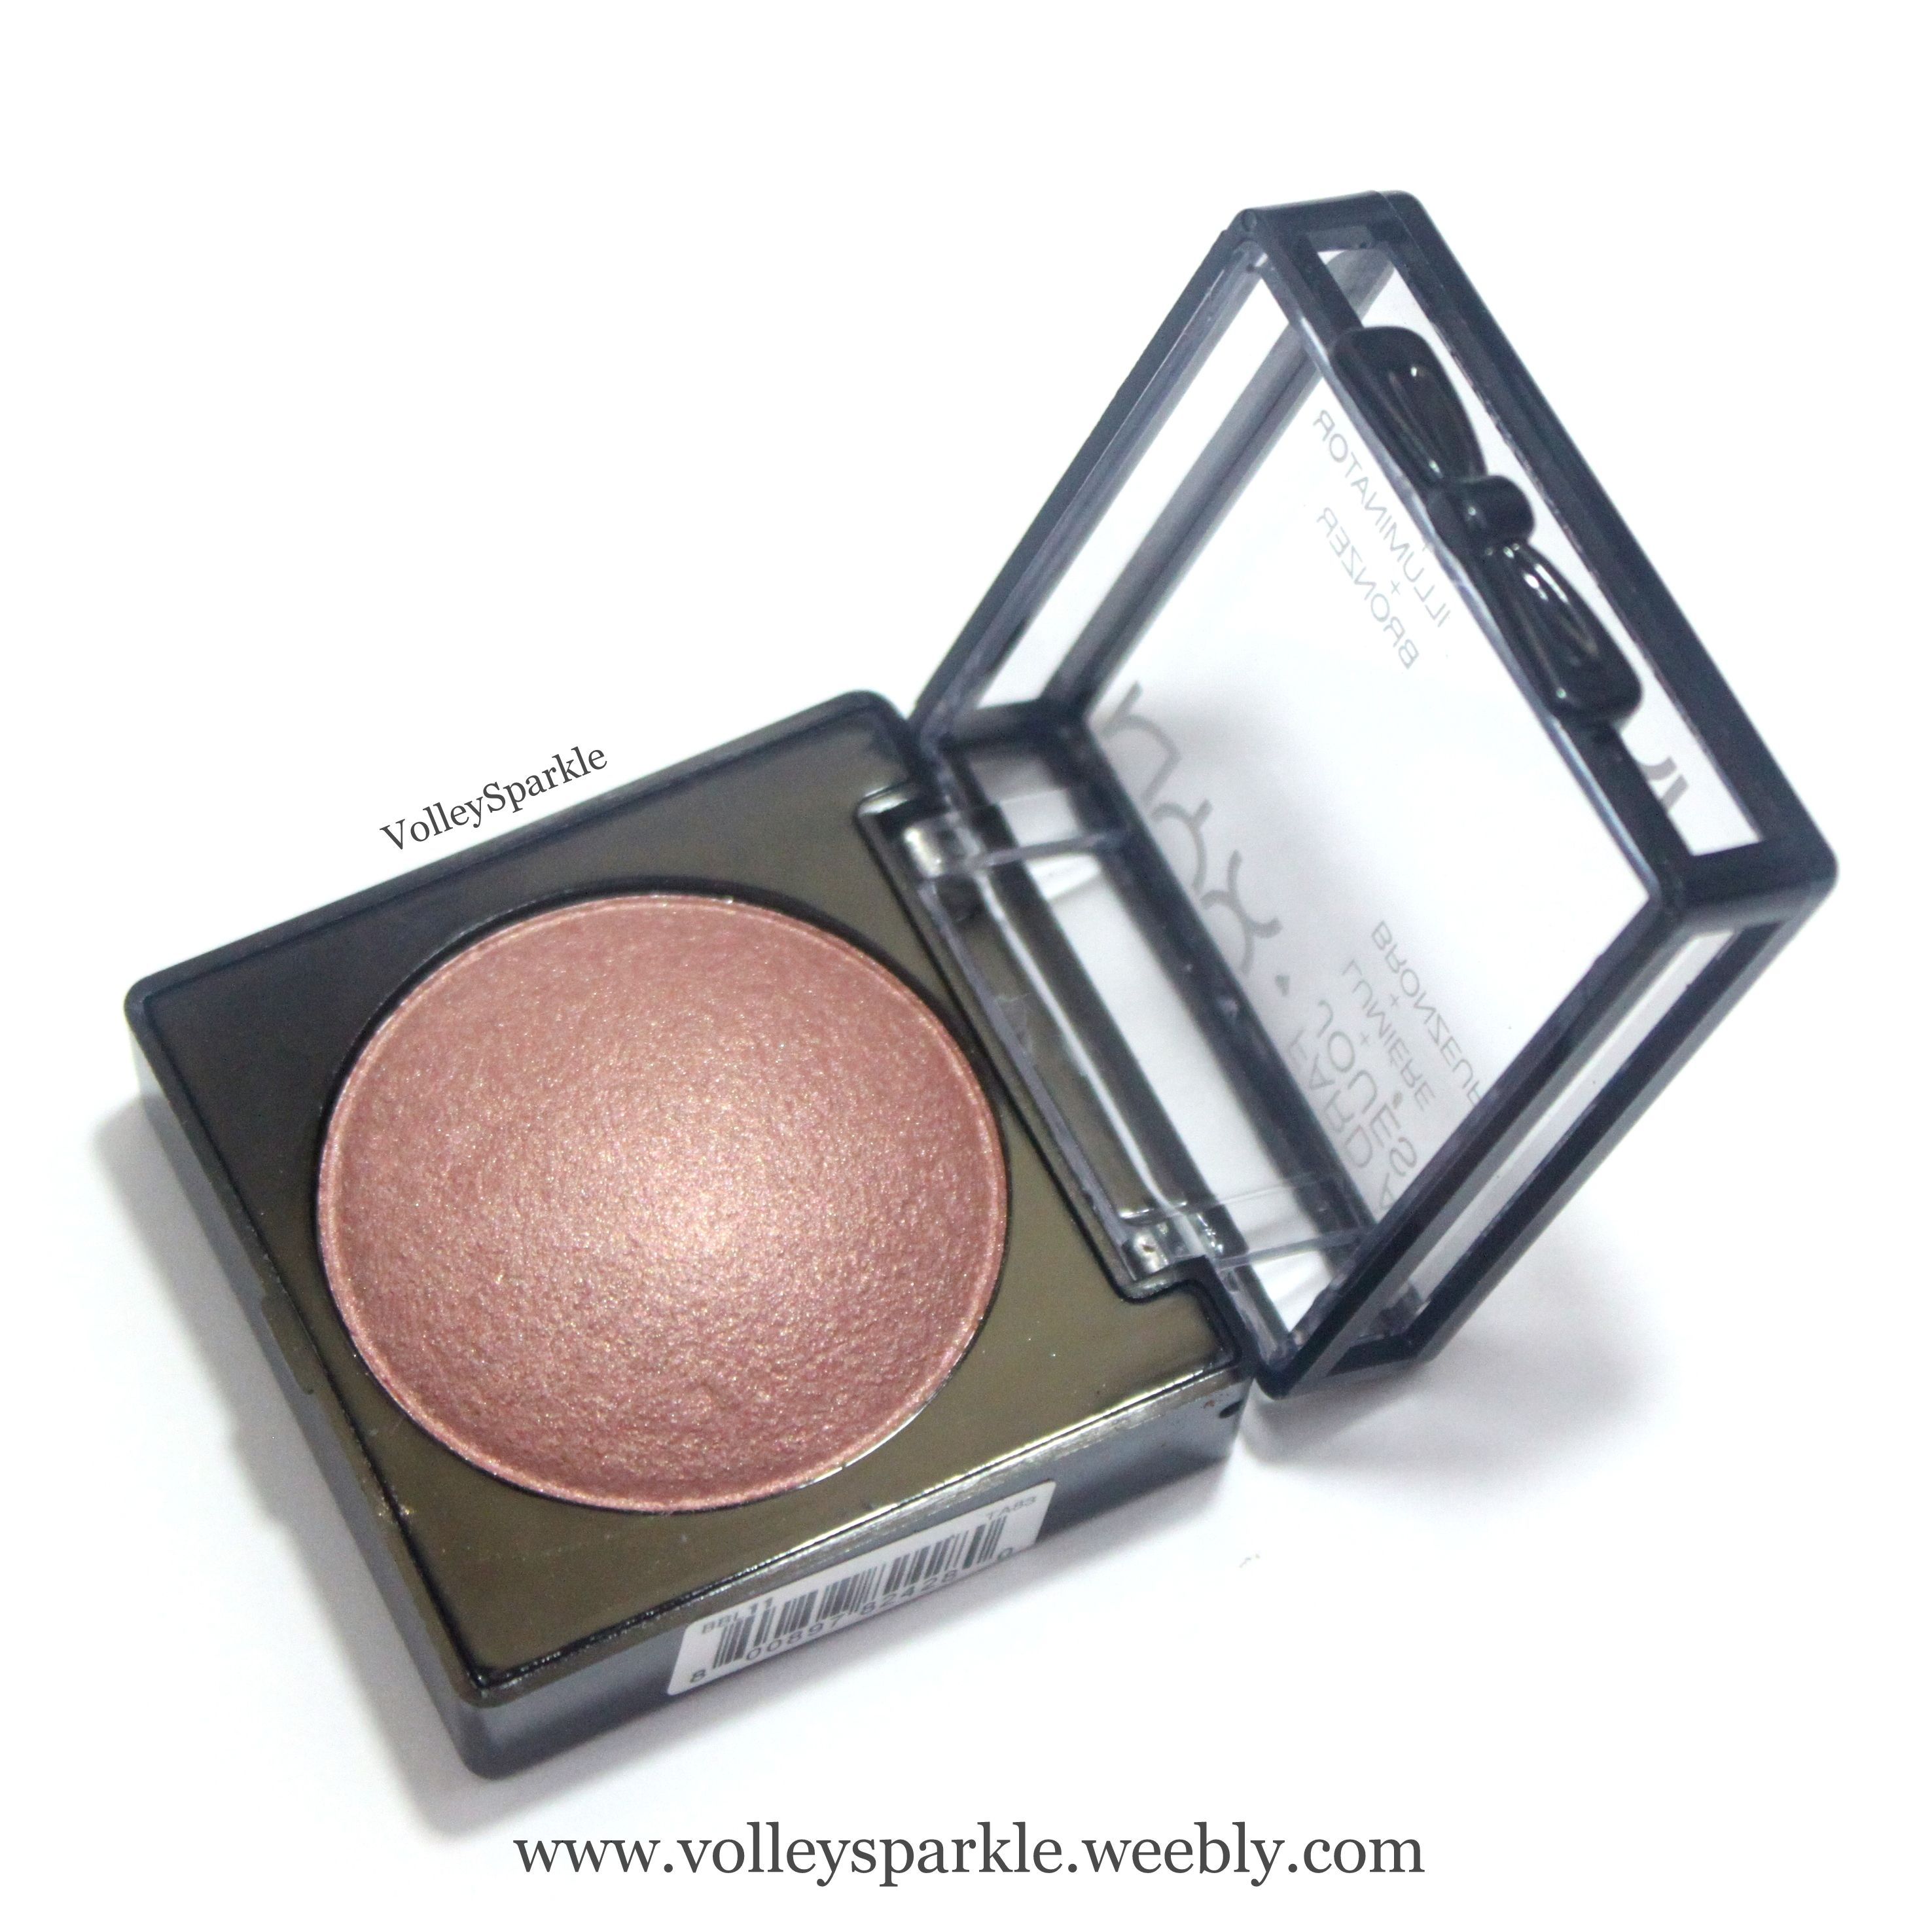 Nyx Chiffon Baked Blush | Review, Photos & Swatches